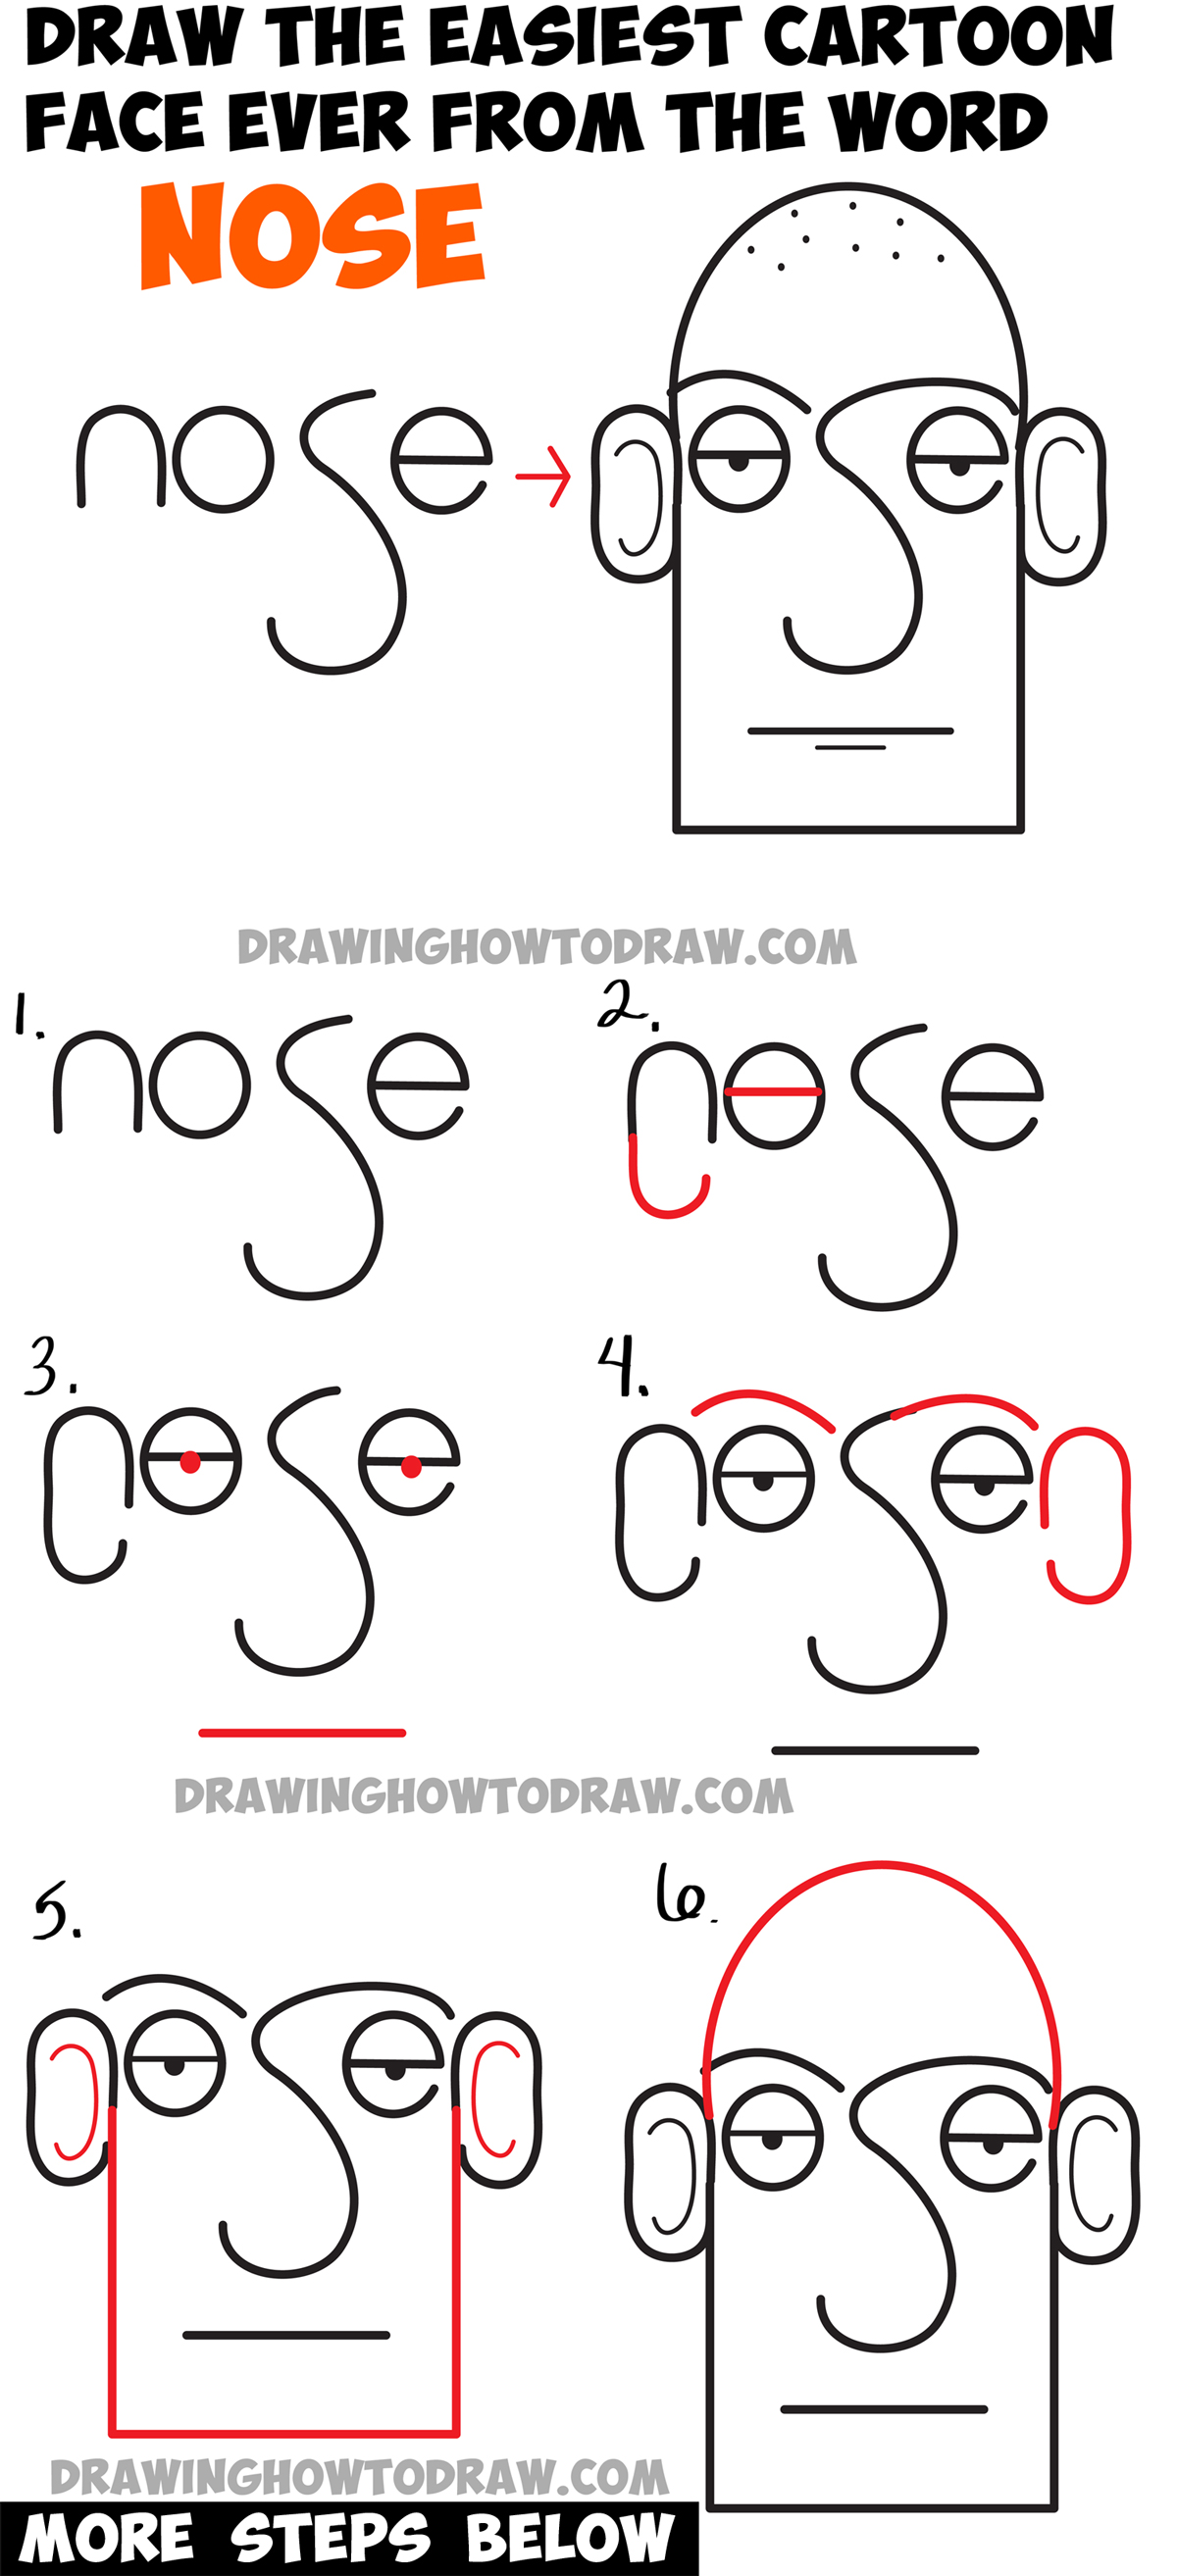 How to draw a cartoon face in easiest way ever from the for Learn drawing online step by step